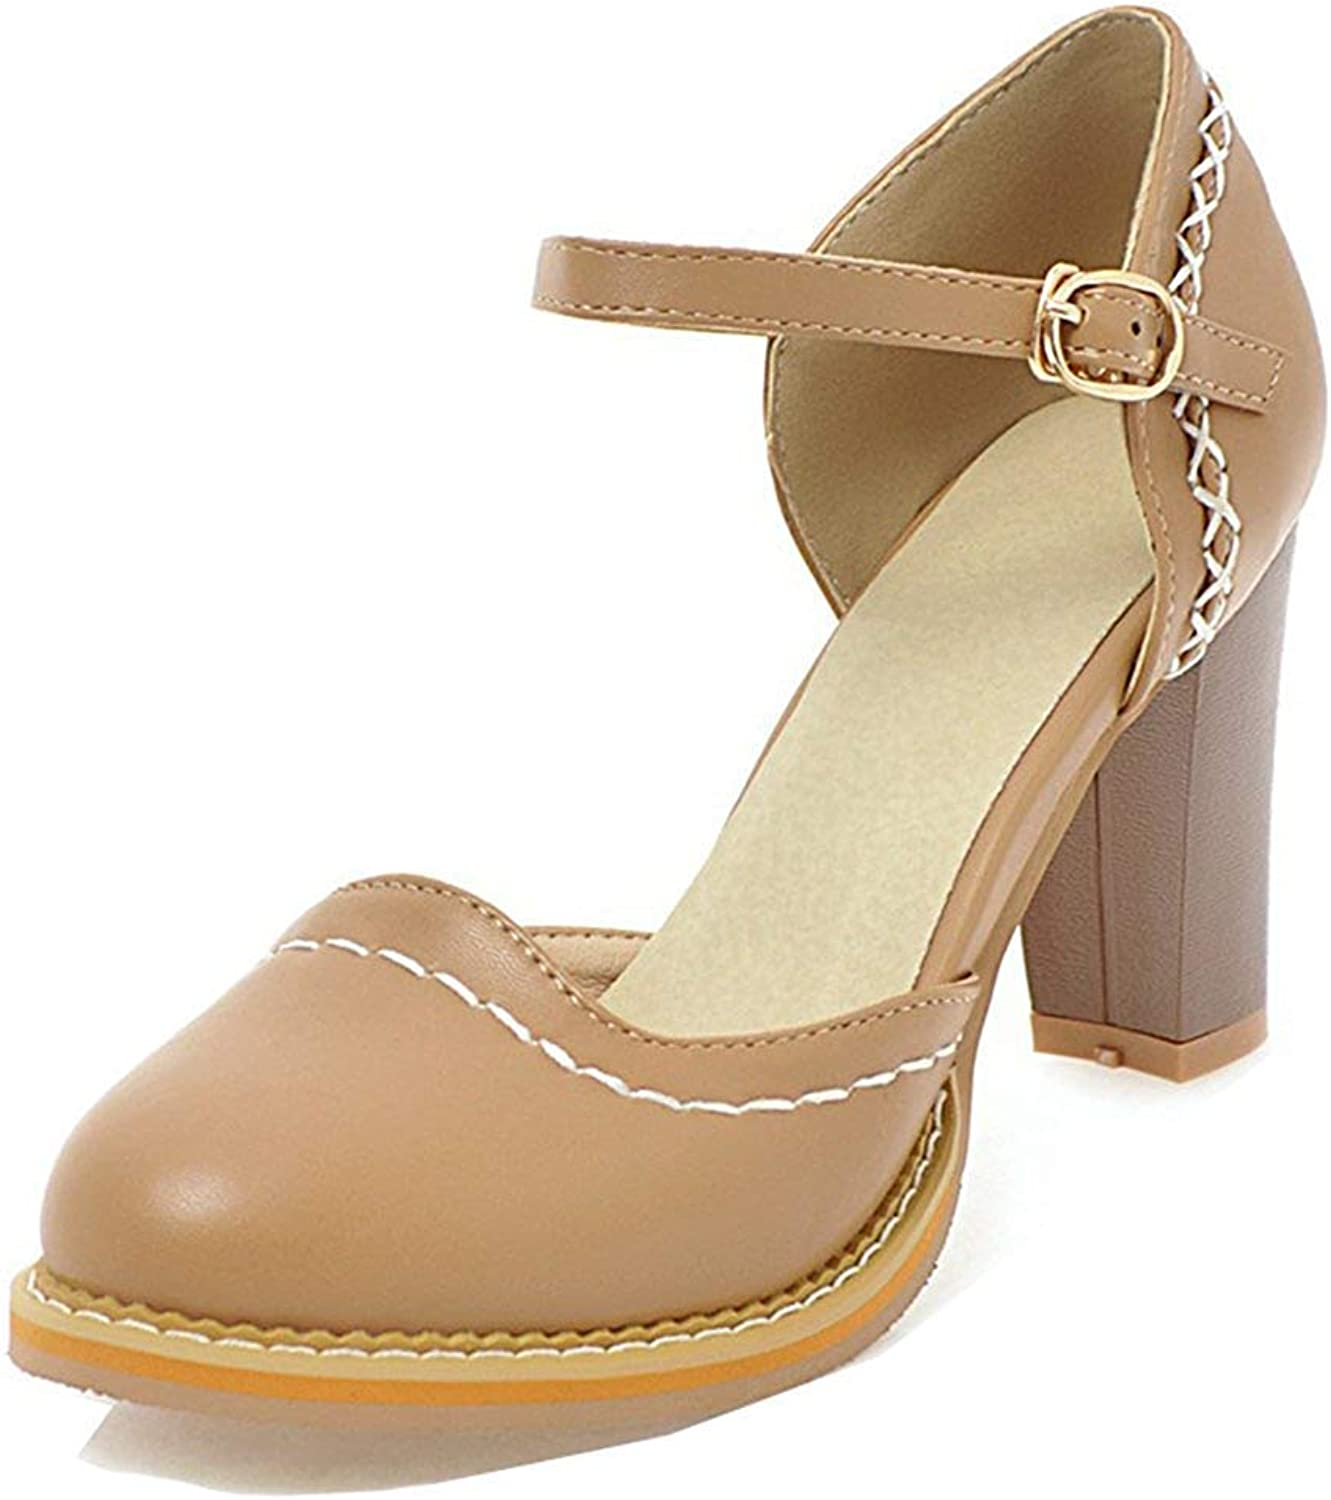 Unm Women's Closed Toe Sandals with Ankle Strap - Stacked High Heel D'Orsay - Cute Comfort Buckled